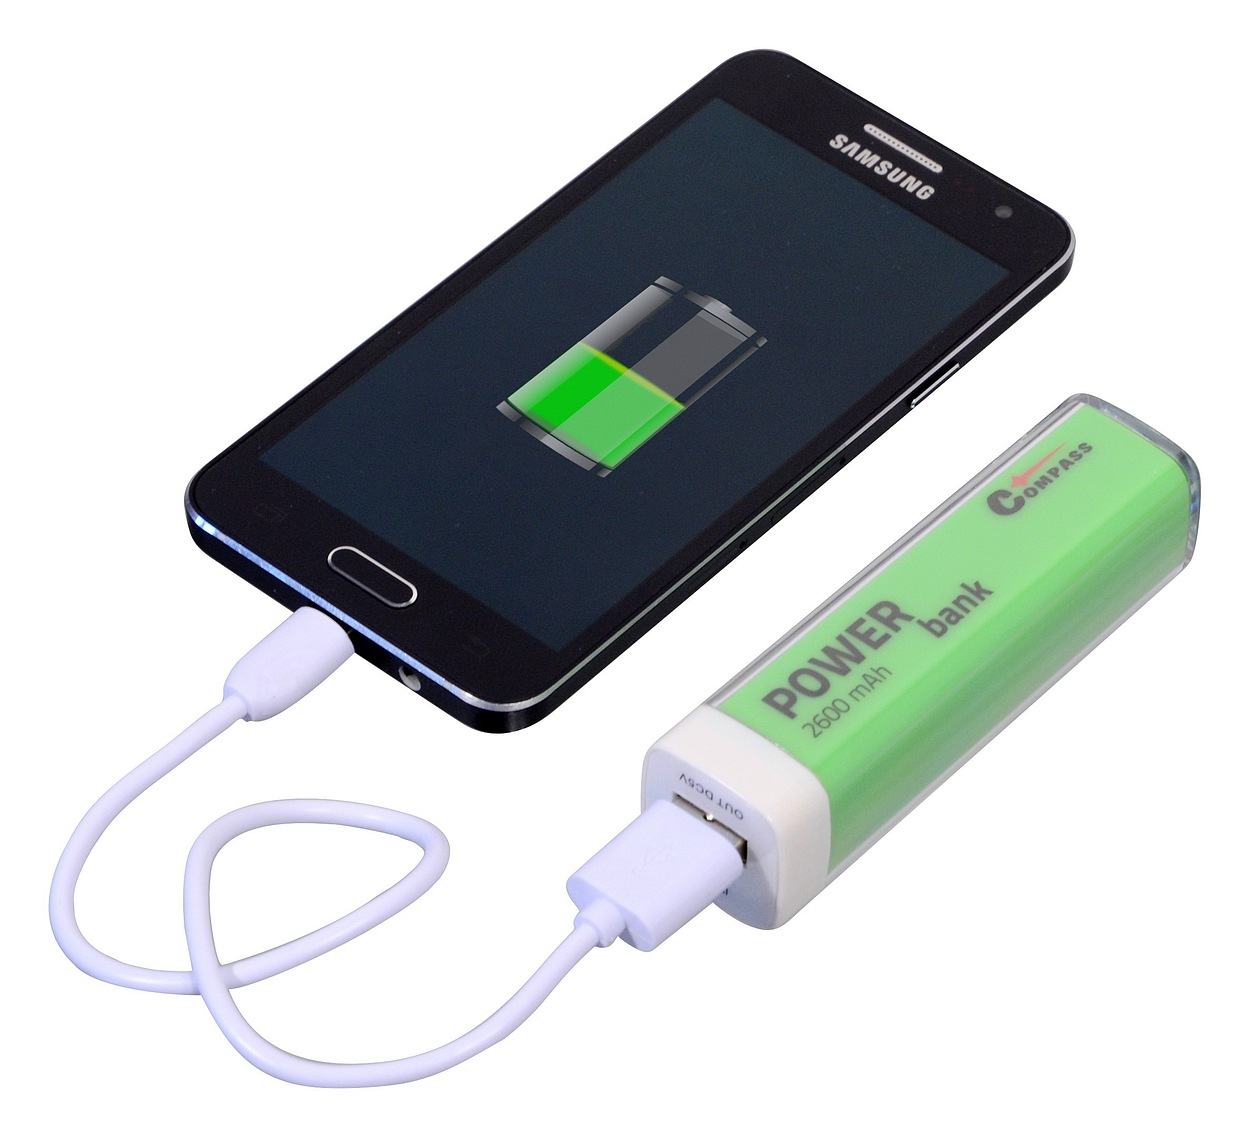 POWER BANK 2600mA zelený + 30cm kabel